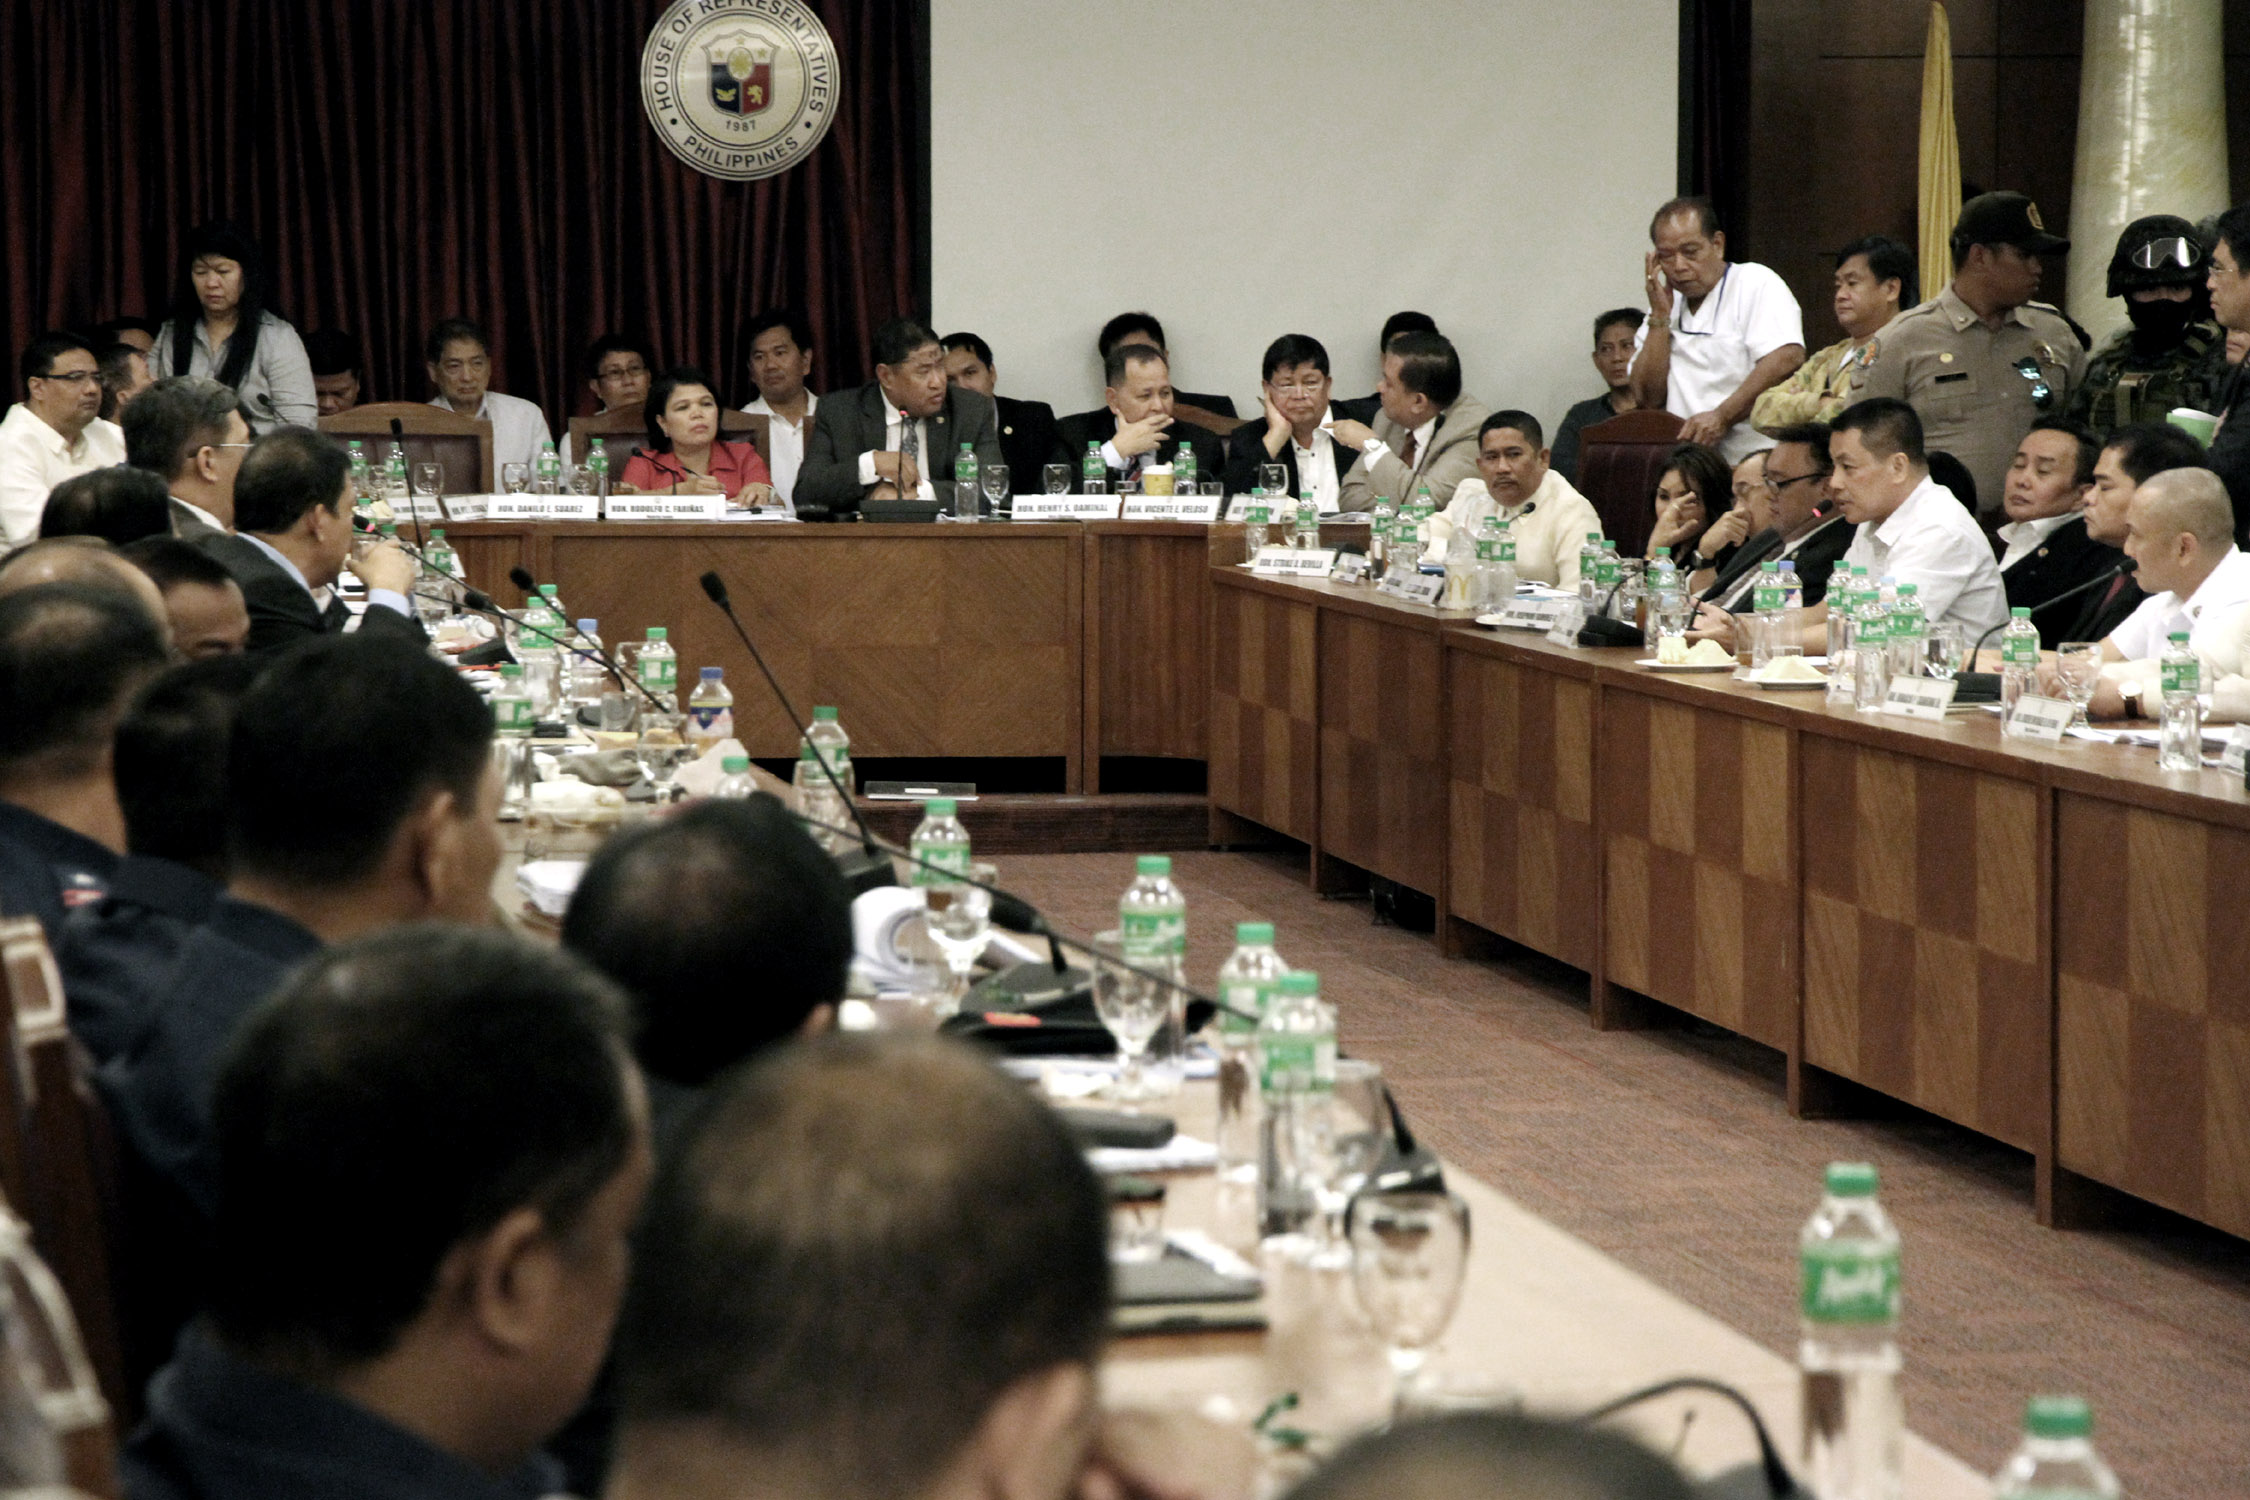 Department of Justice Secretary Vitaliano Aguirre II (left) asks questions to convicted drug lord Herbert Colangco (right), one of the high profile inmates at the New Bilibid Prison (NBP) testifying during the congressional inquiry on illegal drugs on Tuesday (September 20, 2016) at the House of the Representatives in Quezon City. The House committe gave the DOJ Secretary the permission to cross-examine witnesses on the alleged illegal drugs operation inside the detention center. Also in photo is Oriental Mindoro Representative Reynaldo Umali (middle), chairman of the House justice committee. (Photo: Oliver Marquez/PNA)